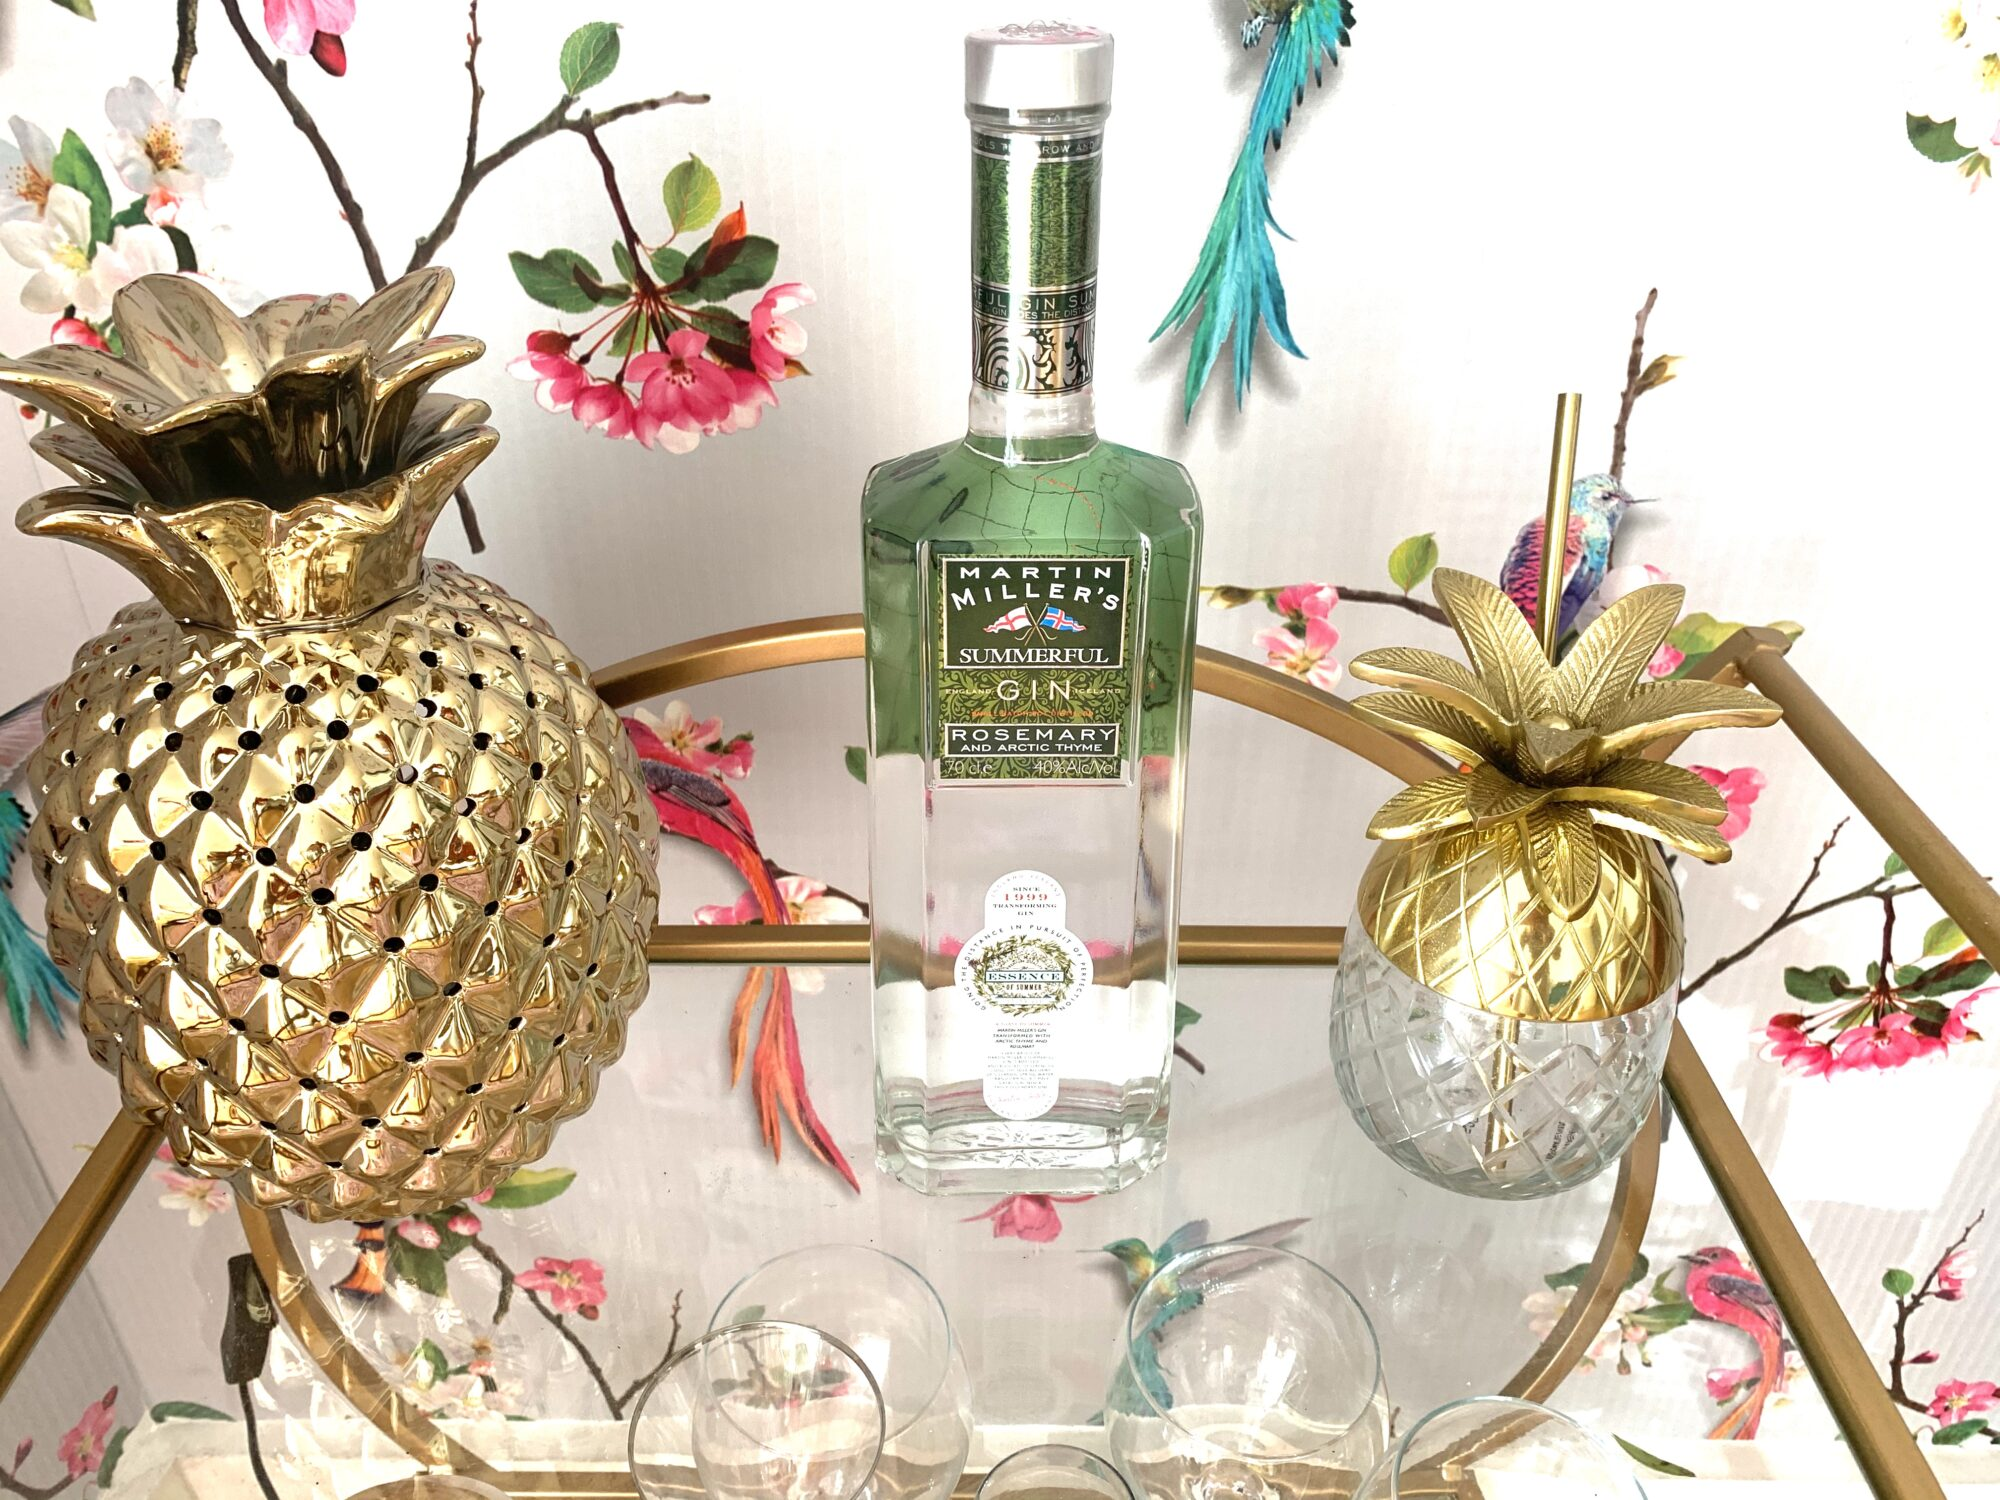 The Coolest Gins of 2020 - Martin Miller's SUMMERFUL Gin bursting with freshness